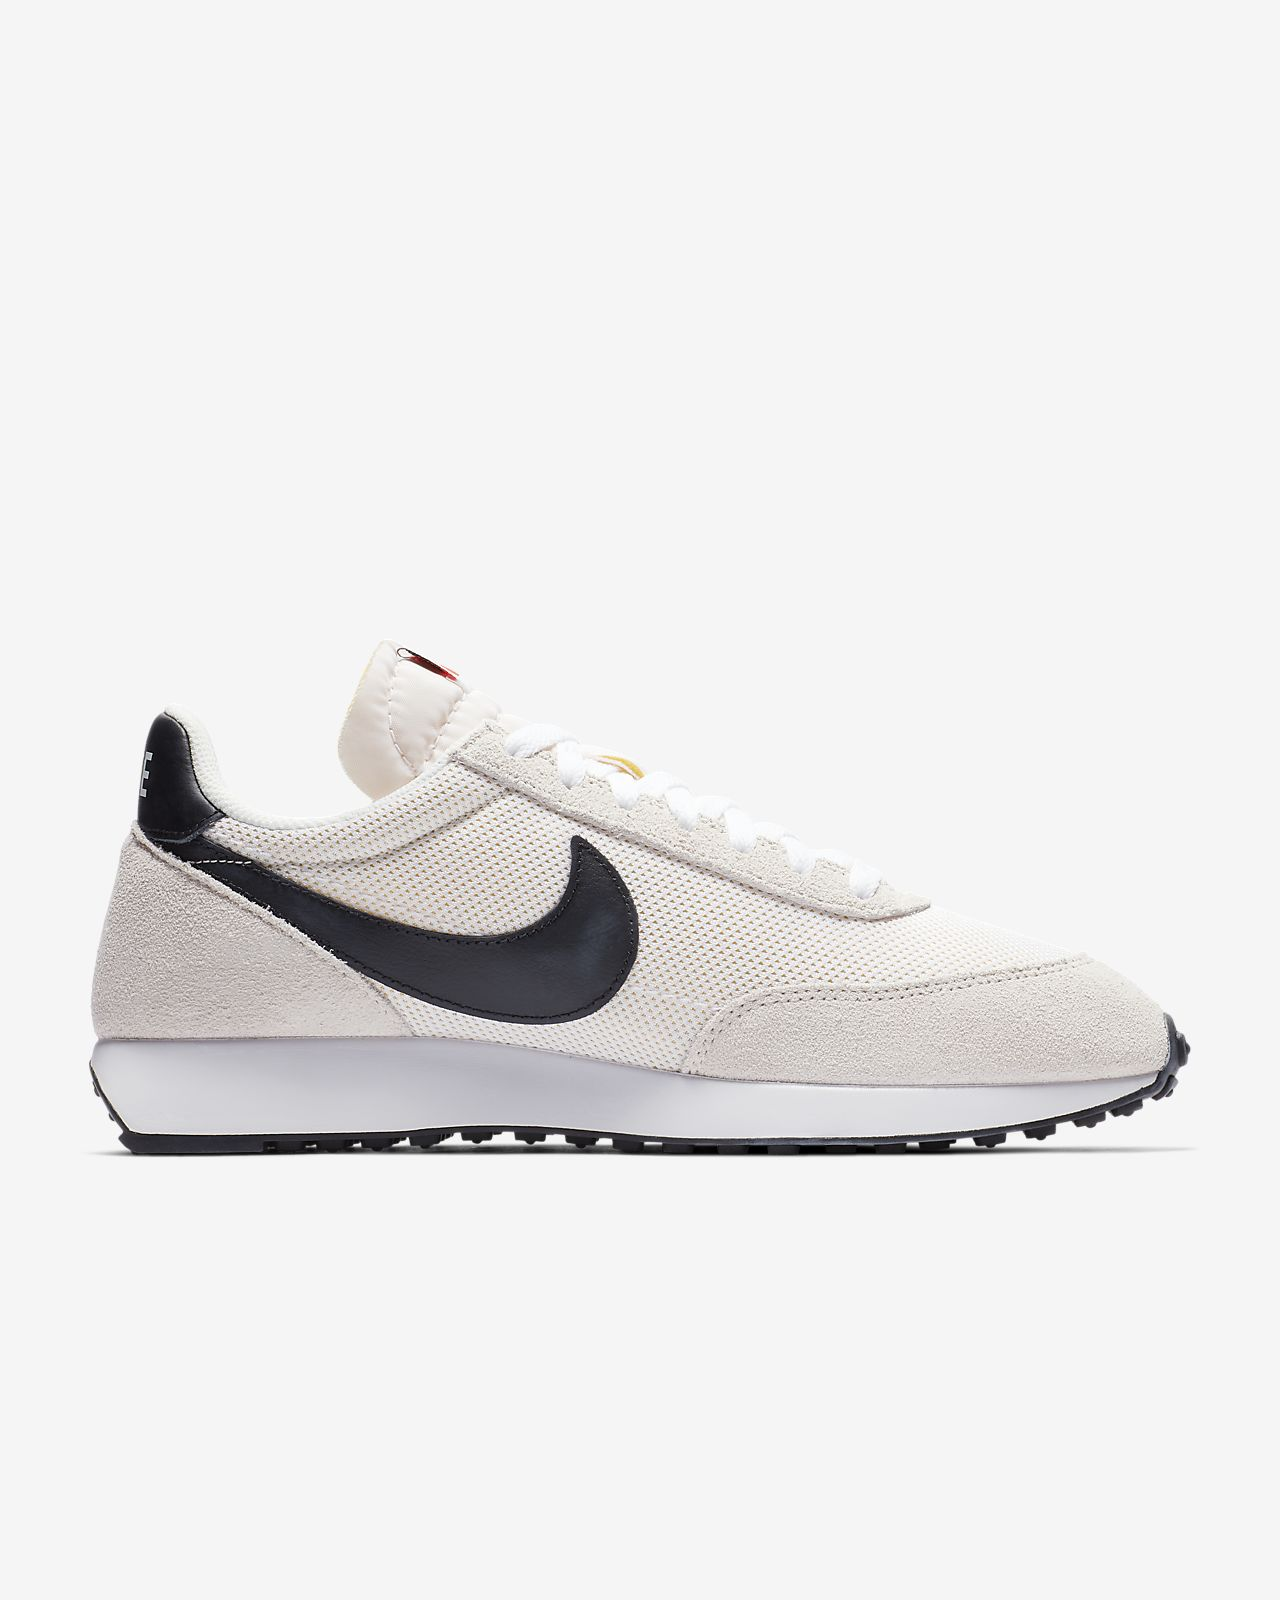 the best attitude fafcb 32d27 ... Nike Air Tailwind 79 Men s Shoe